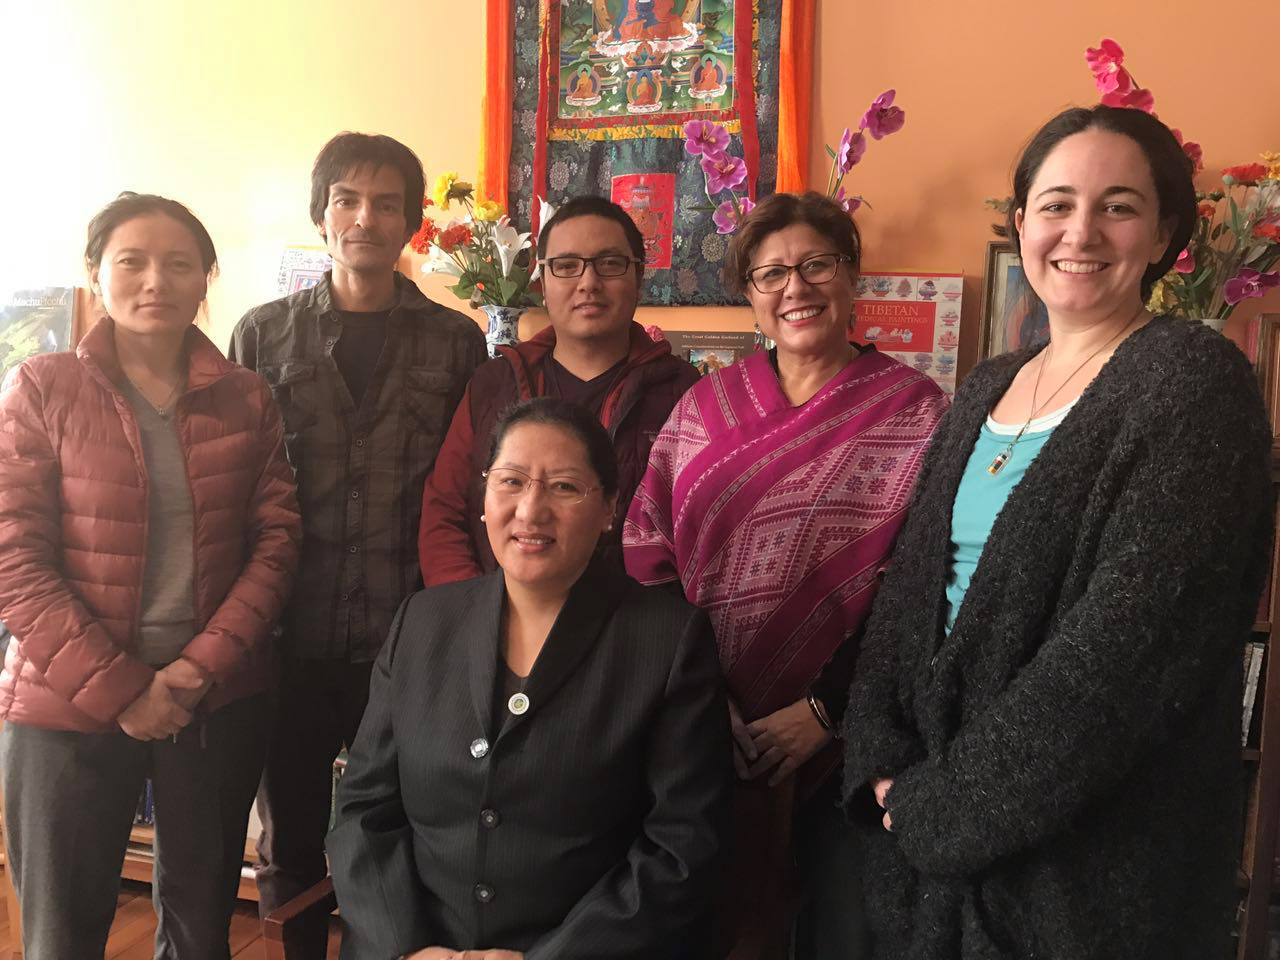 Khewang Ping Cuowangmu (Phuntsog Wangmo) with some of her Tibetan Medicine students in the spring of 2017 at Shang Shung Institute in Conway MA.